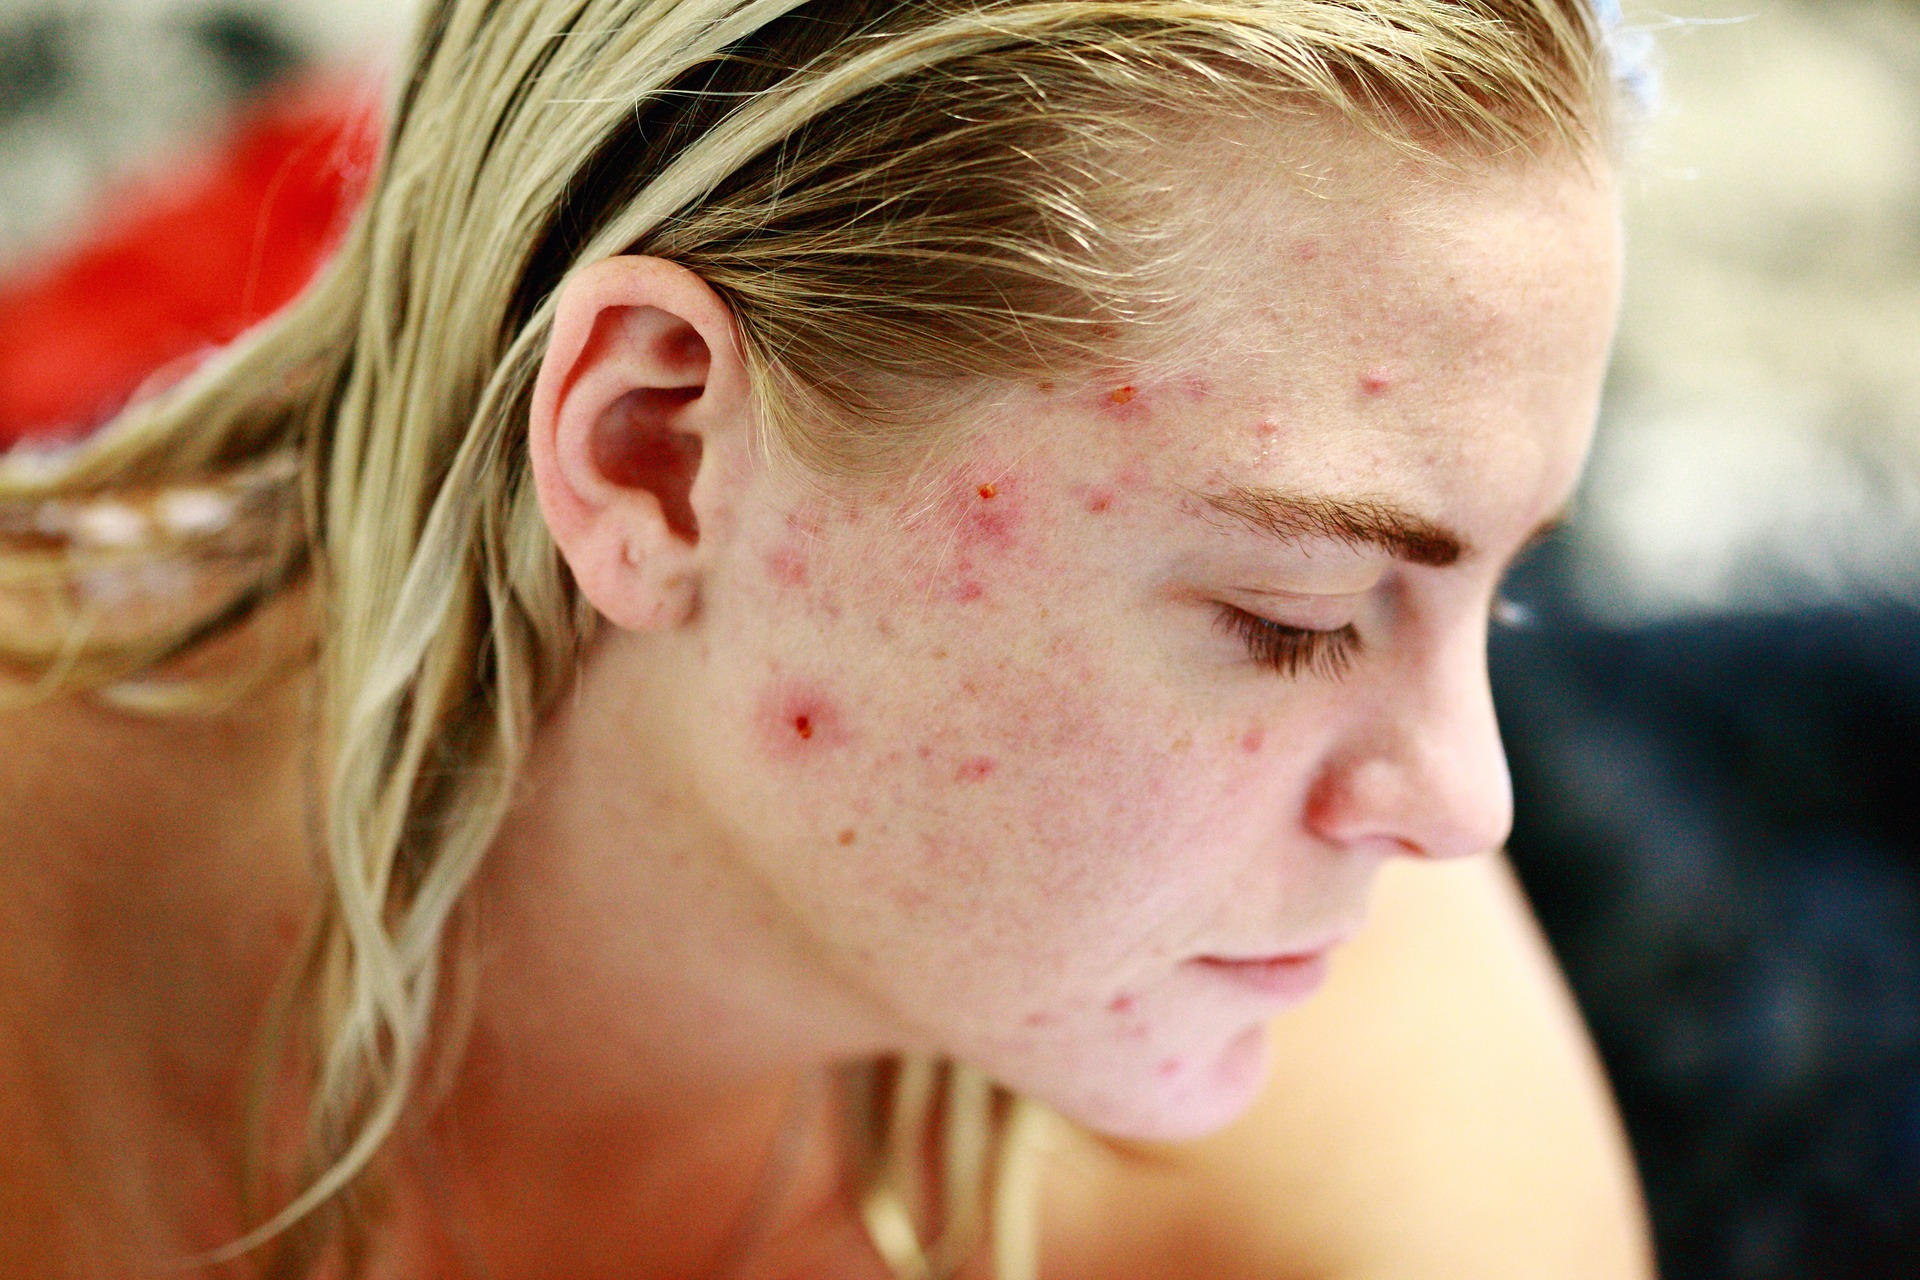 How to Stop Acne